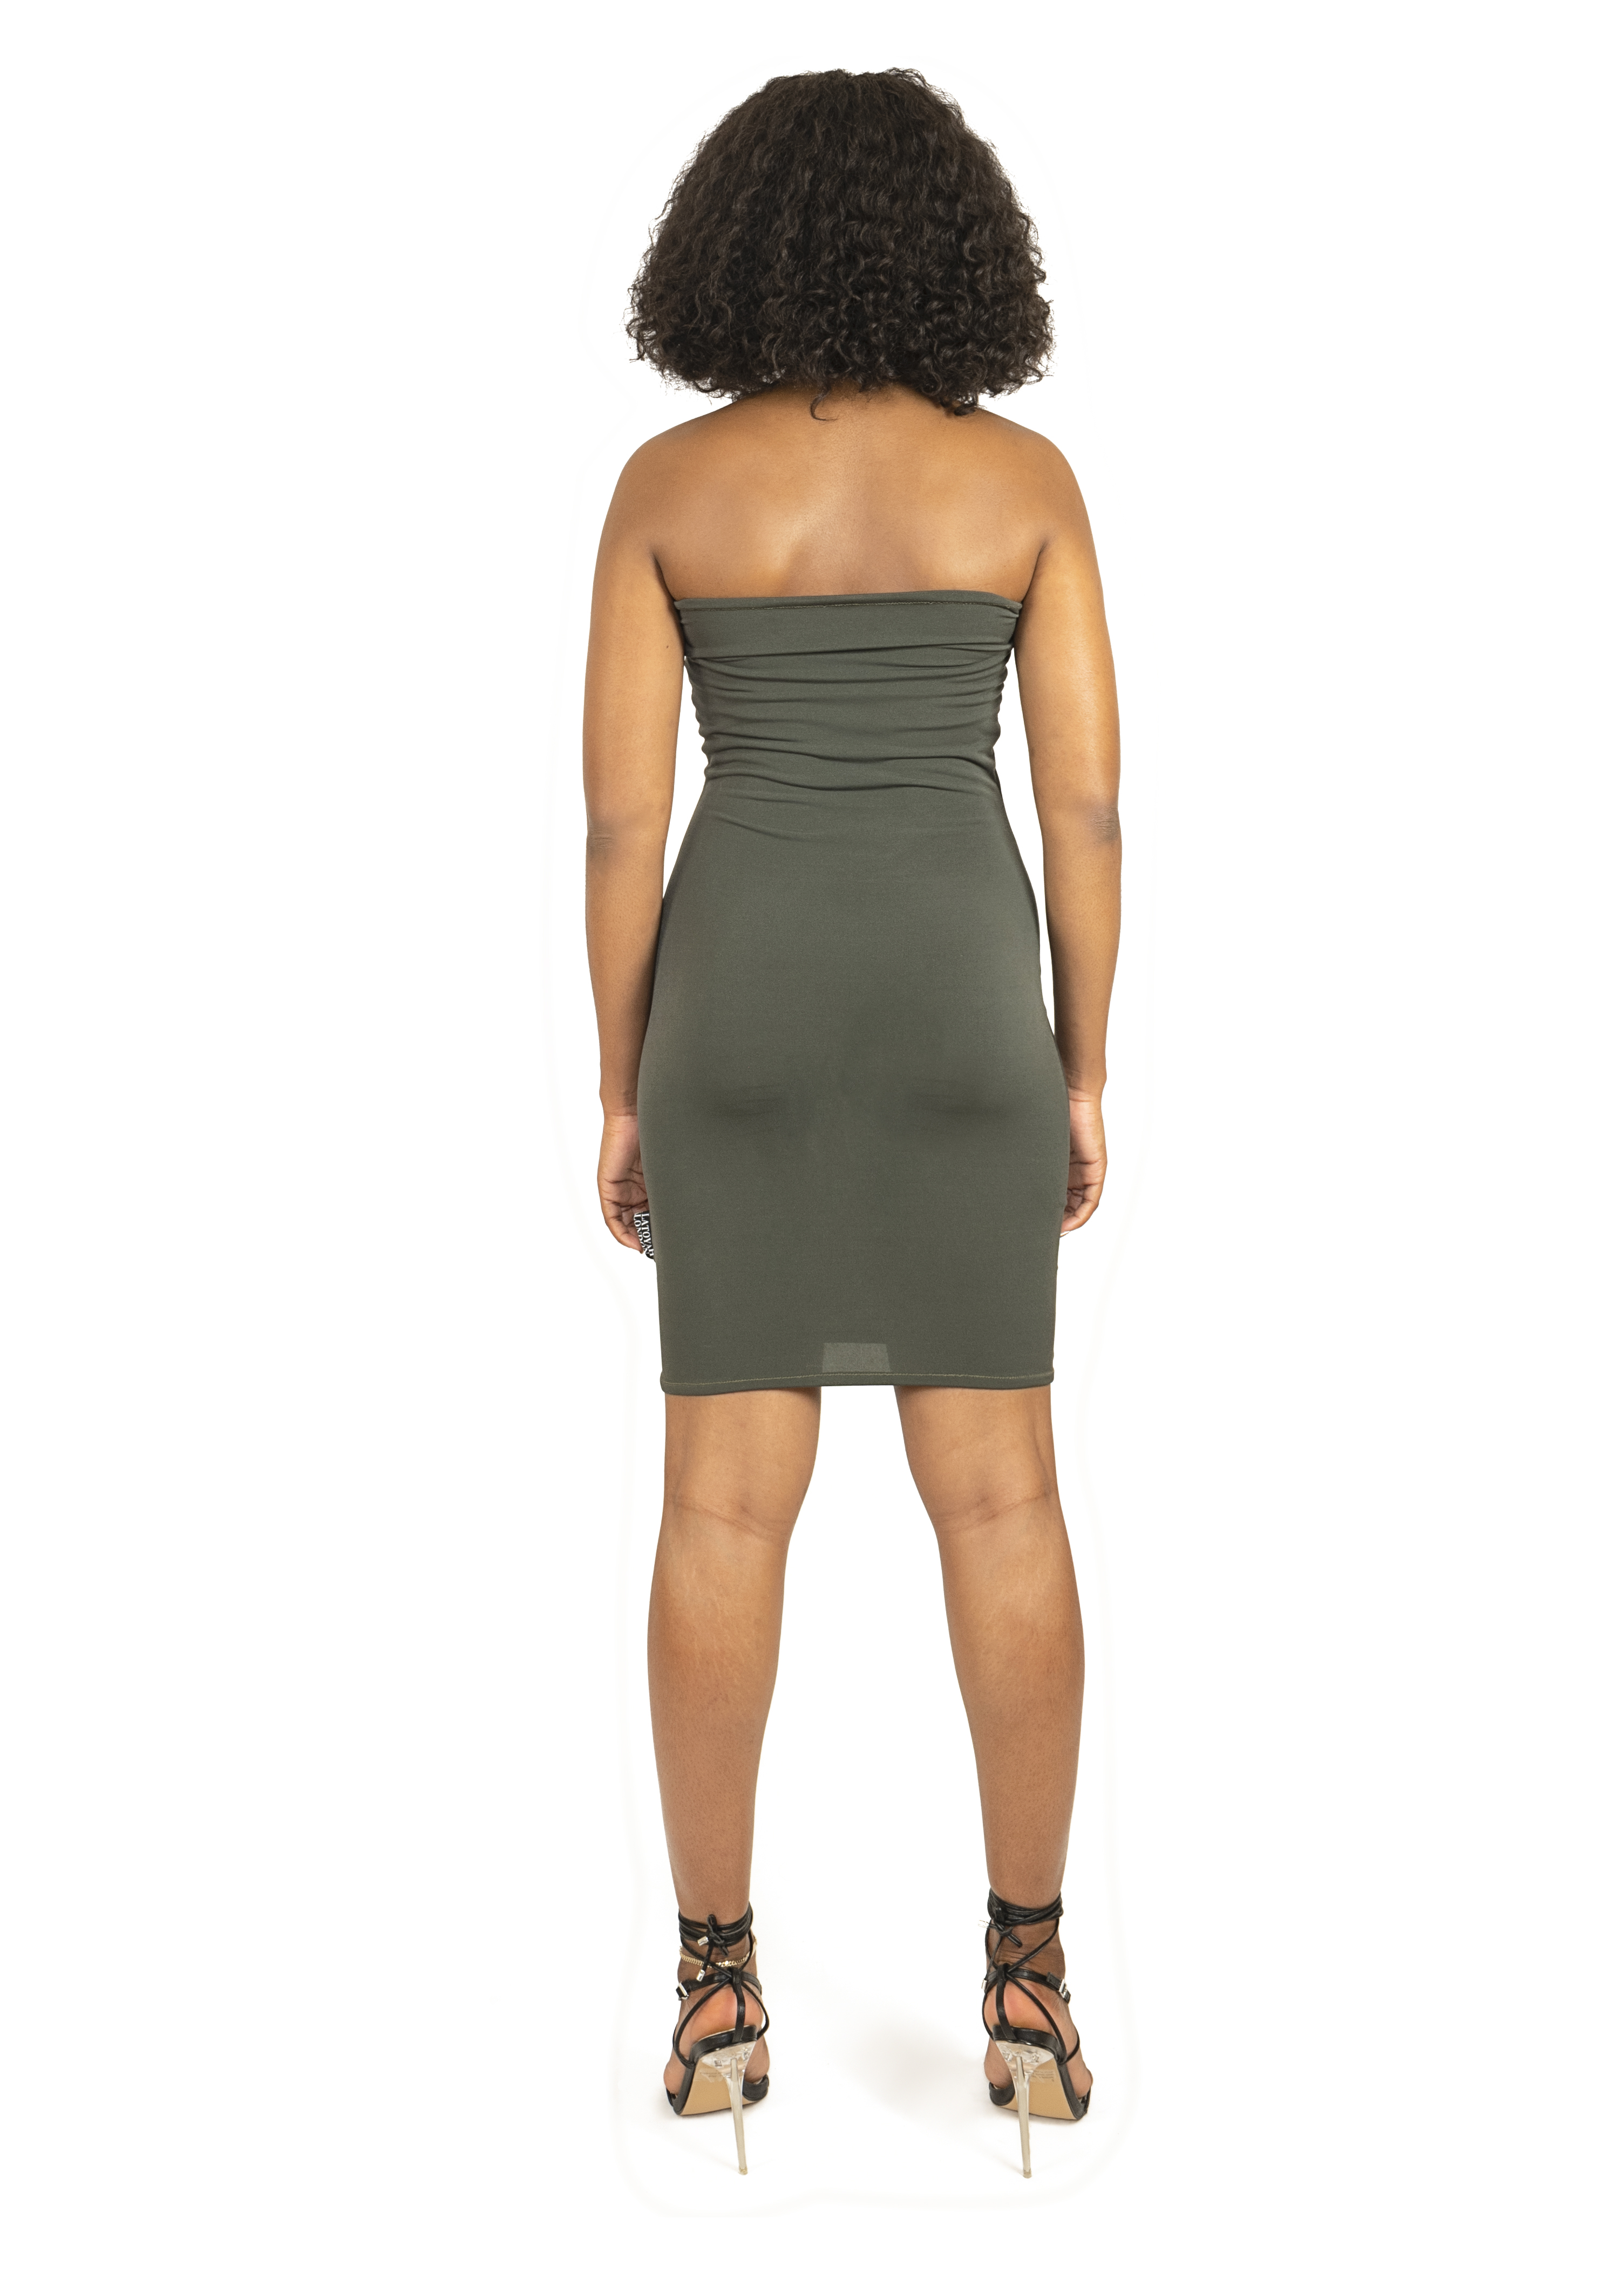 Dress_cloths_garments_product_photos_with_model_19